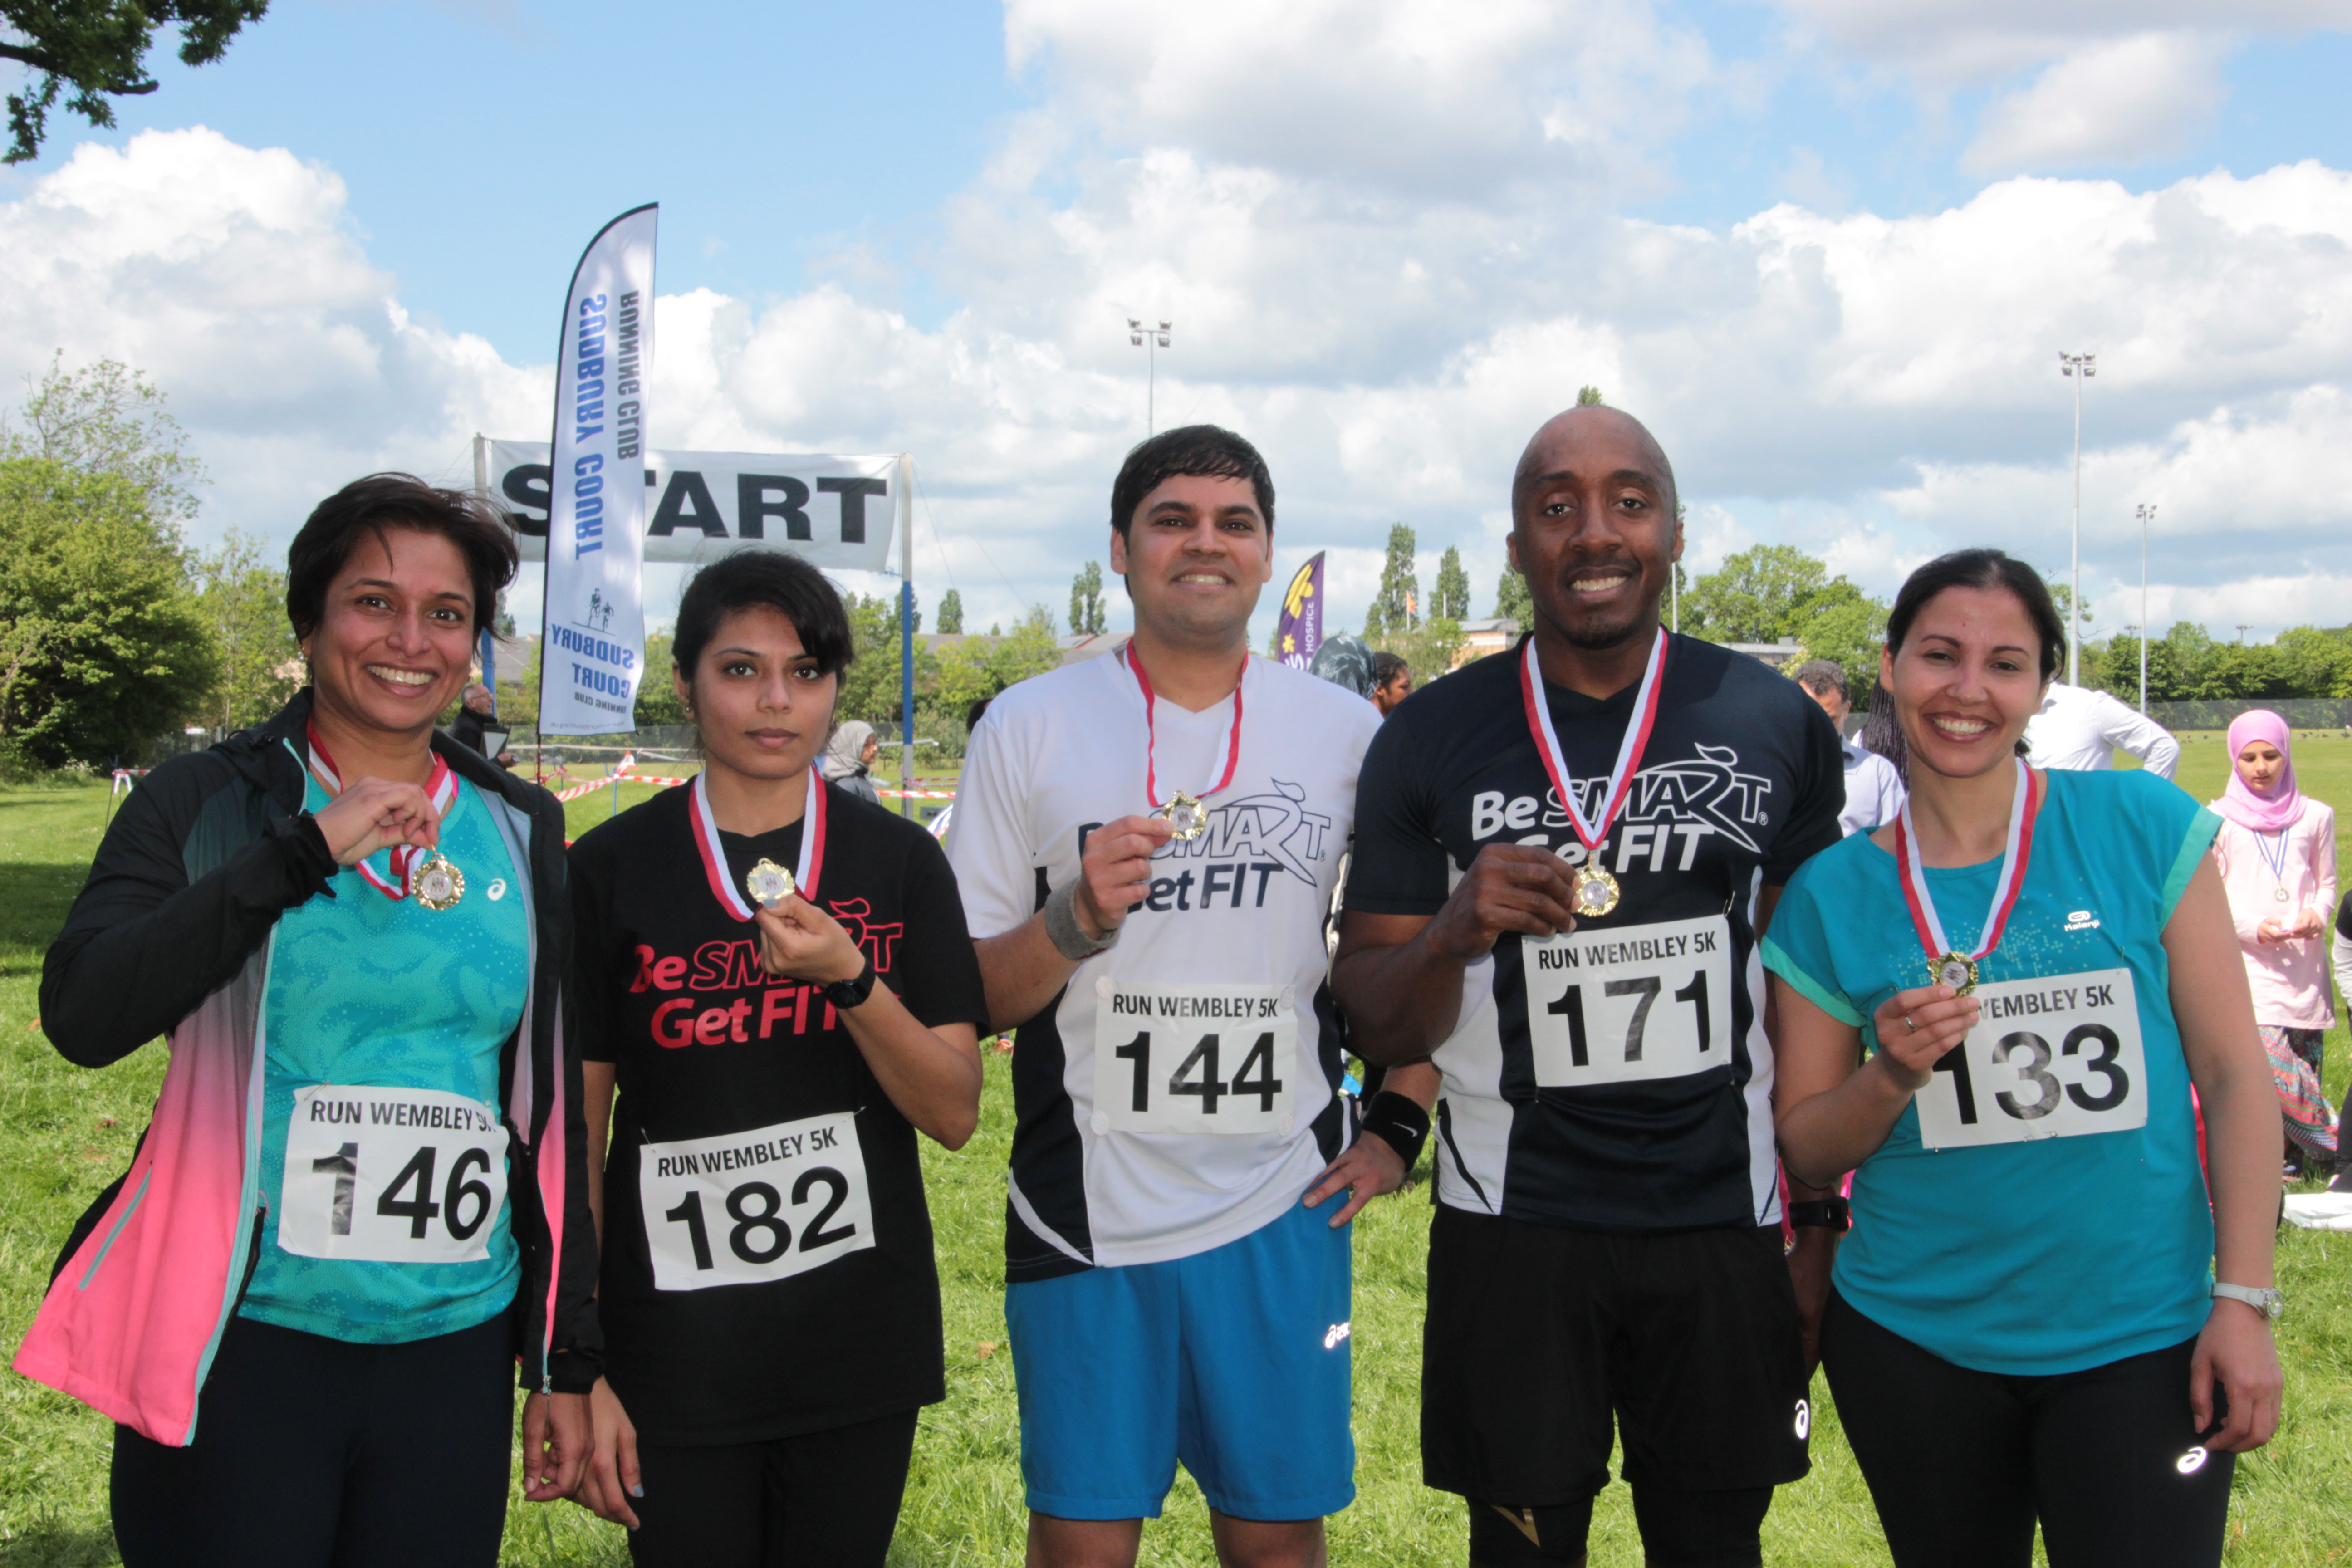 Run Wembley 5k